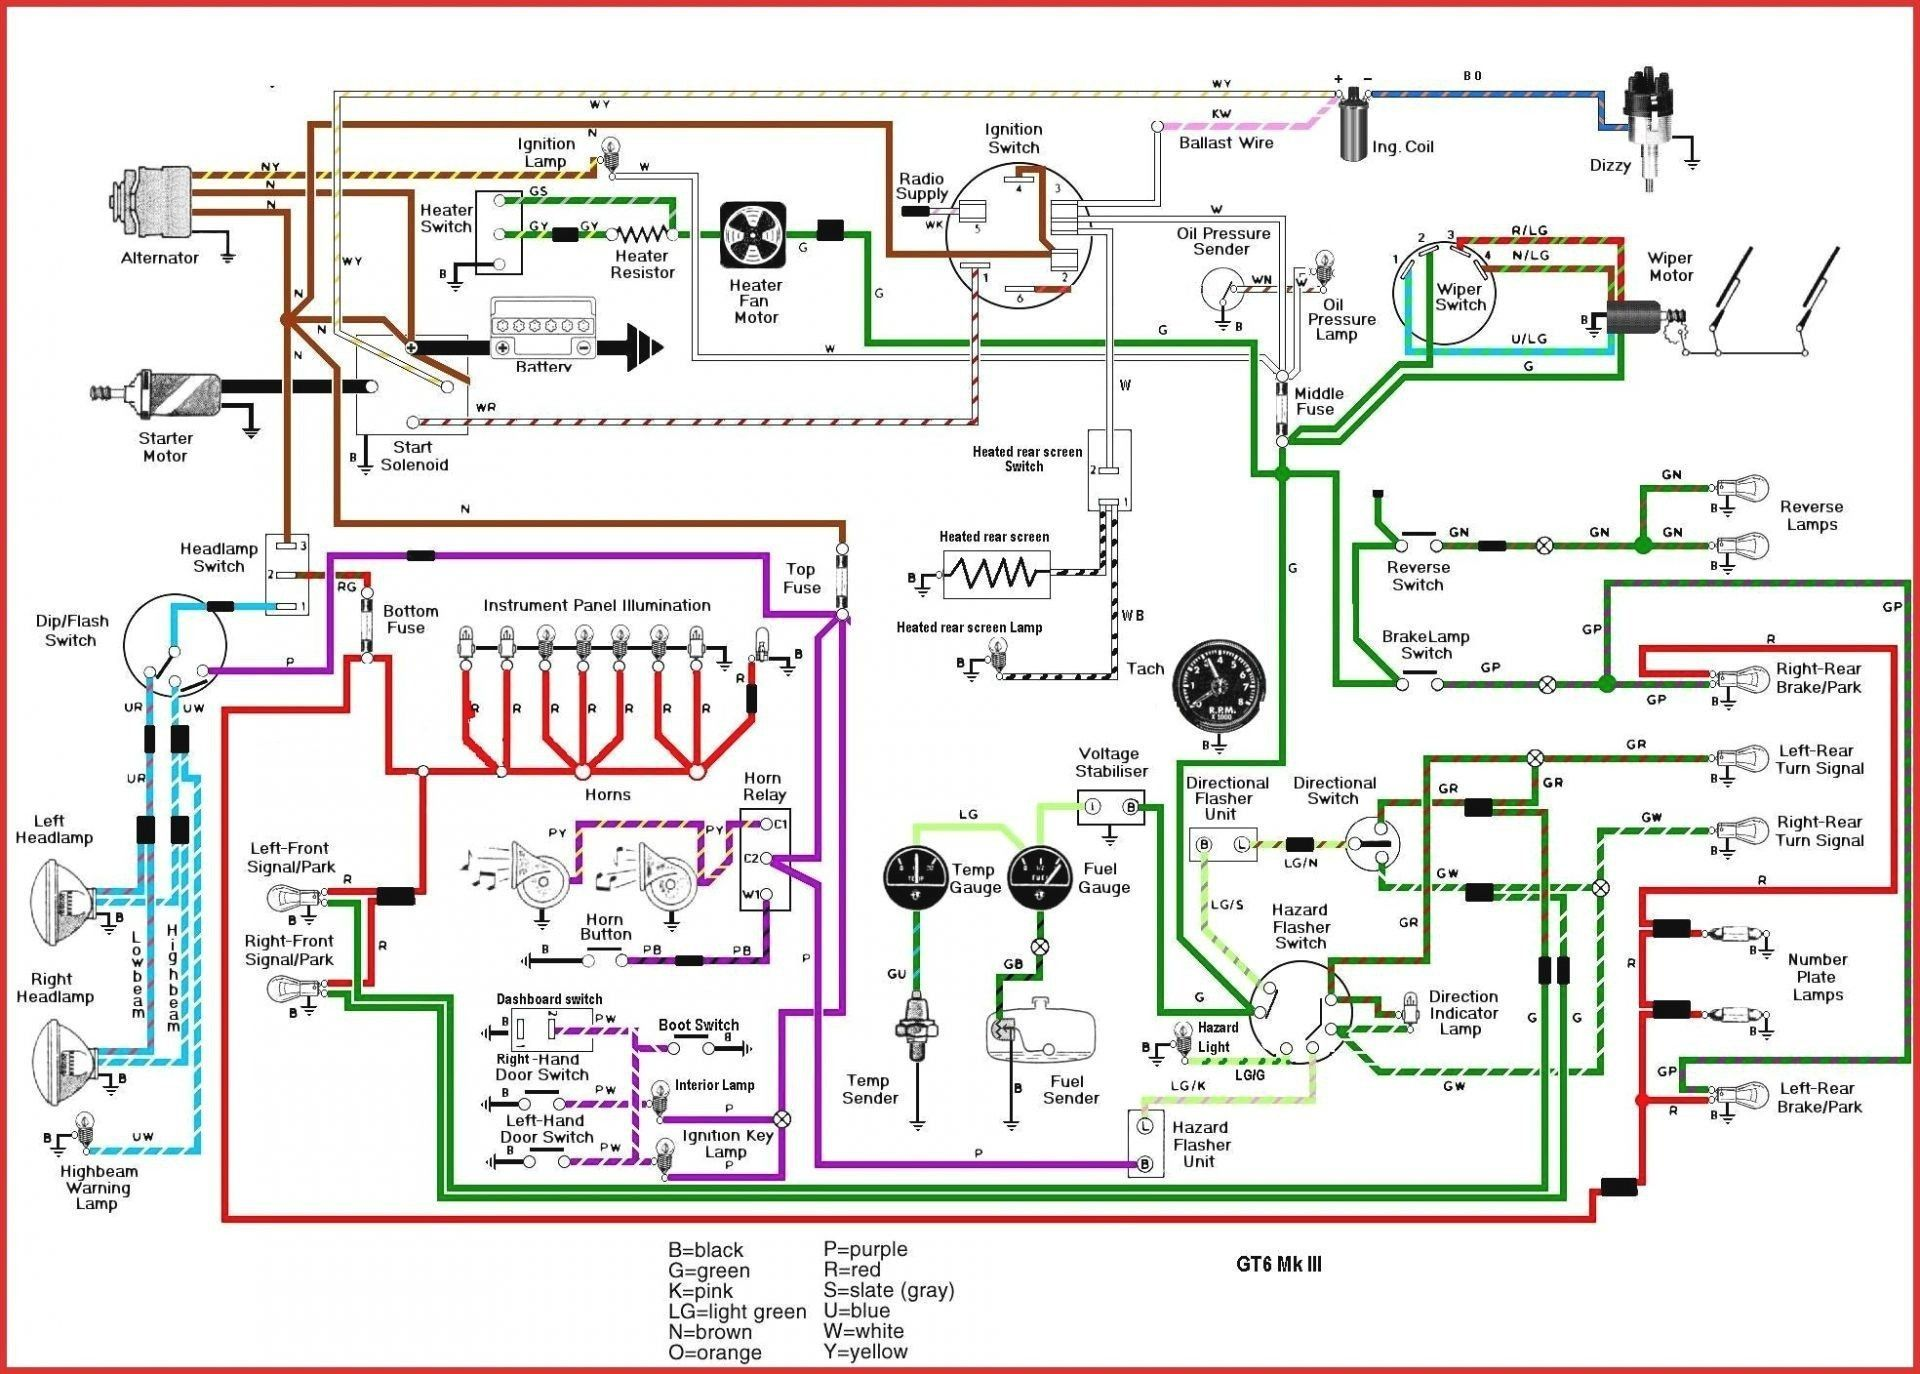 nw_9230] home electrical wiring diagram and installation basics schematic  wiring  hemt comin rmine nect athid ynthe funi icism viewor mohammedshrine librar  wiring 101